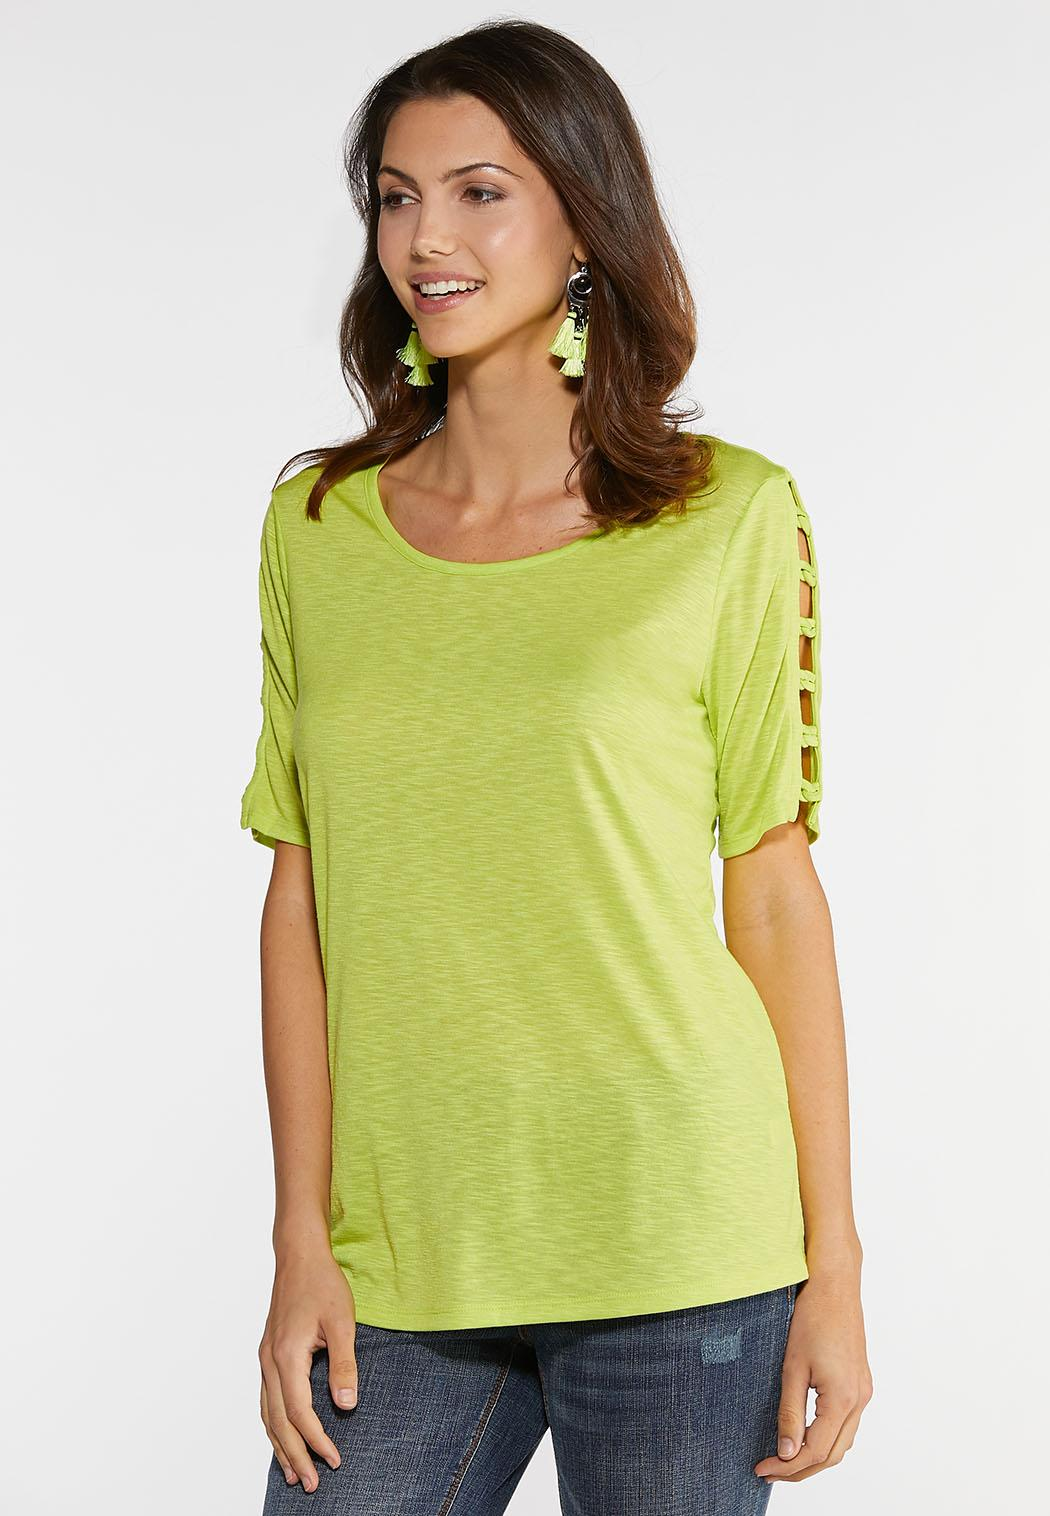 Knotted Sleeve Tee